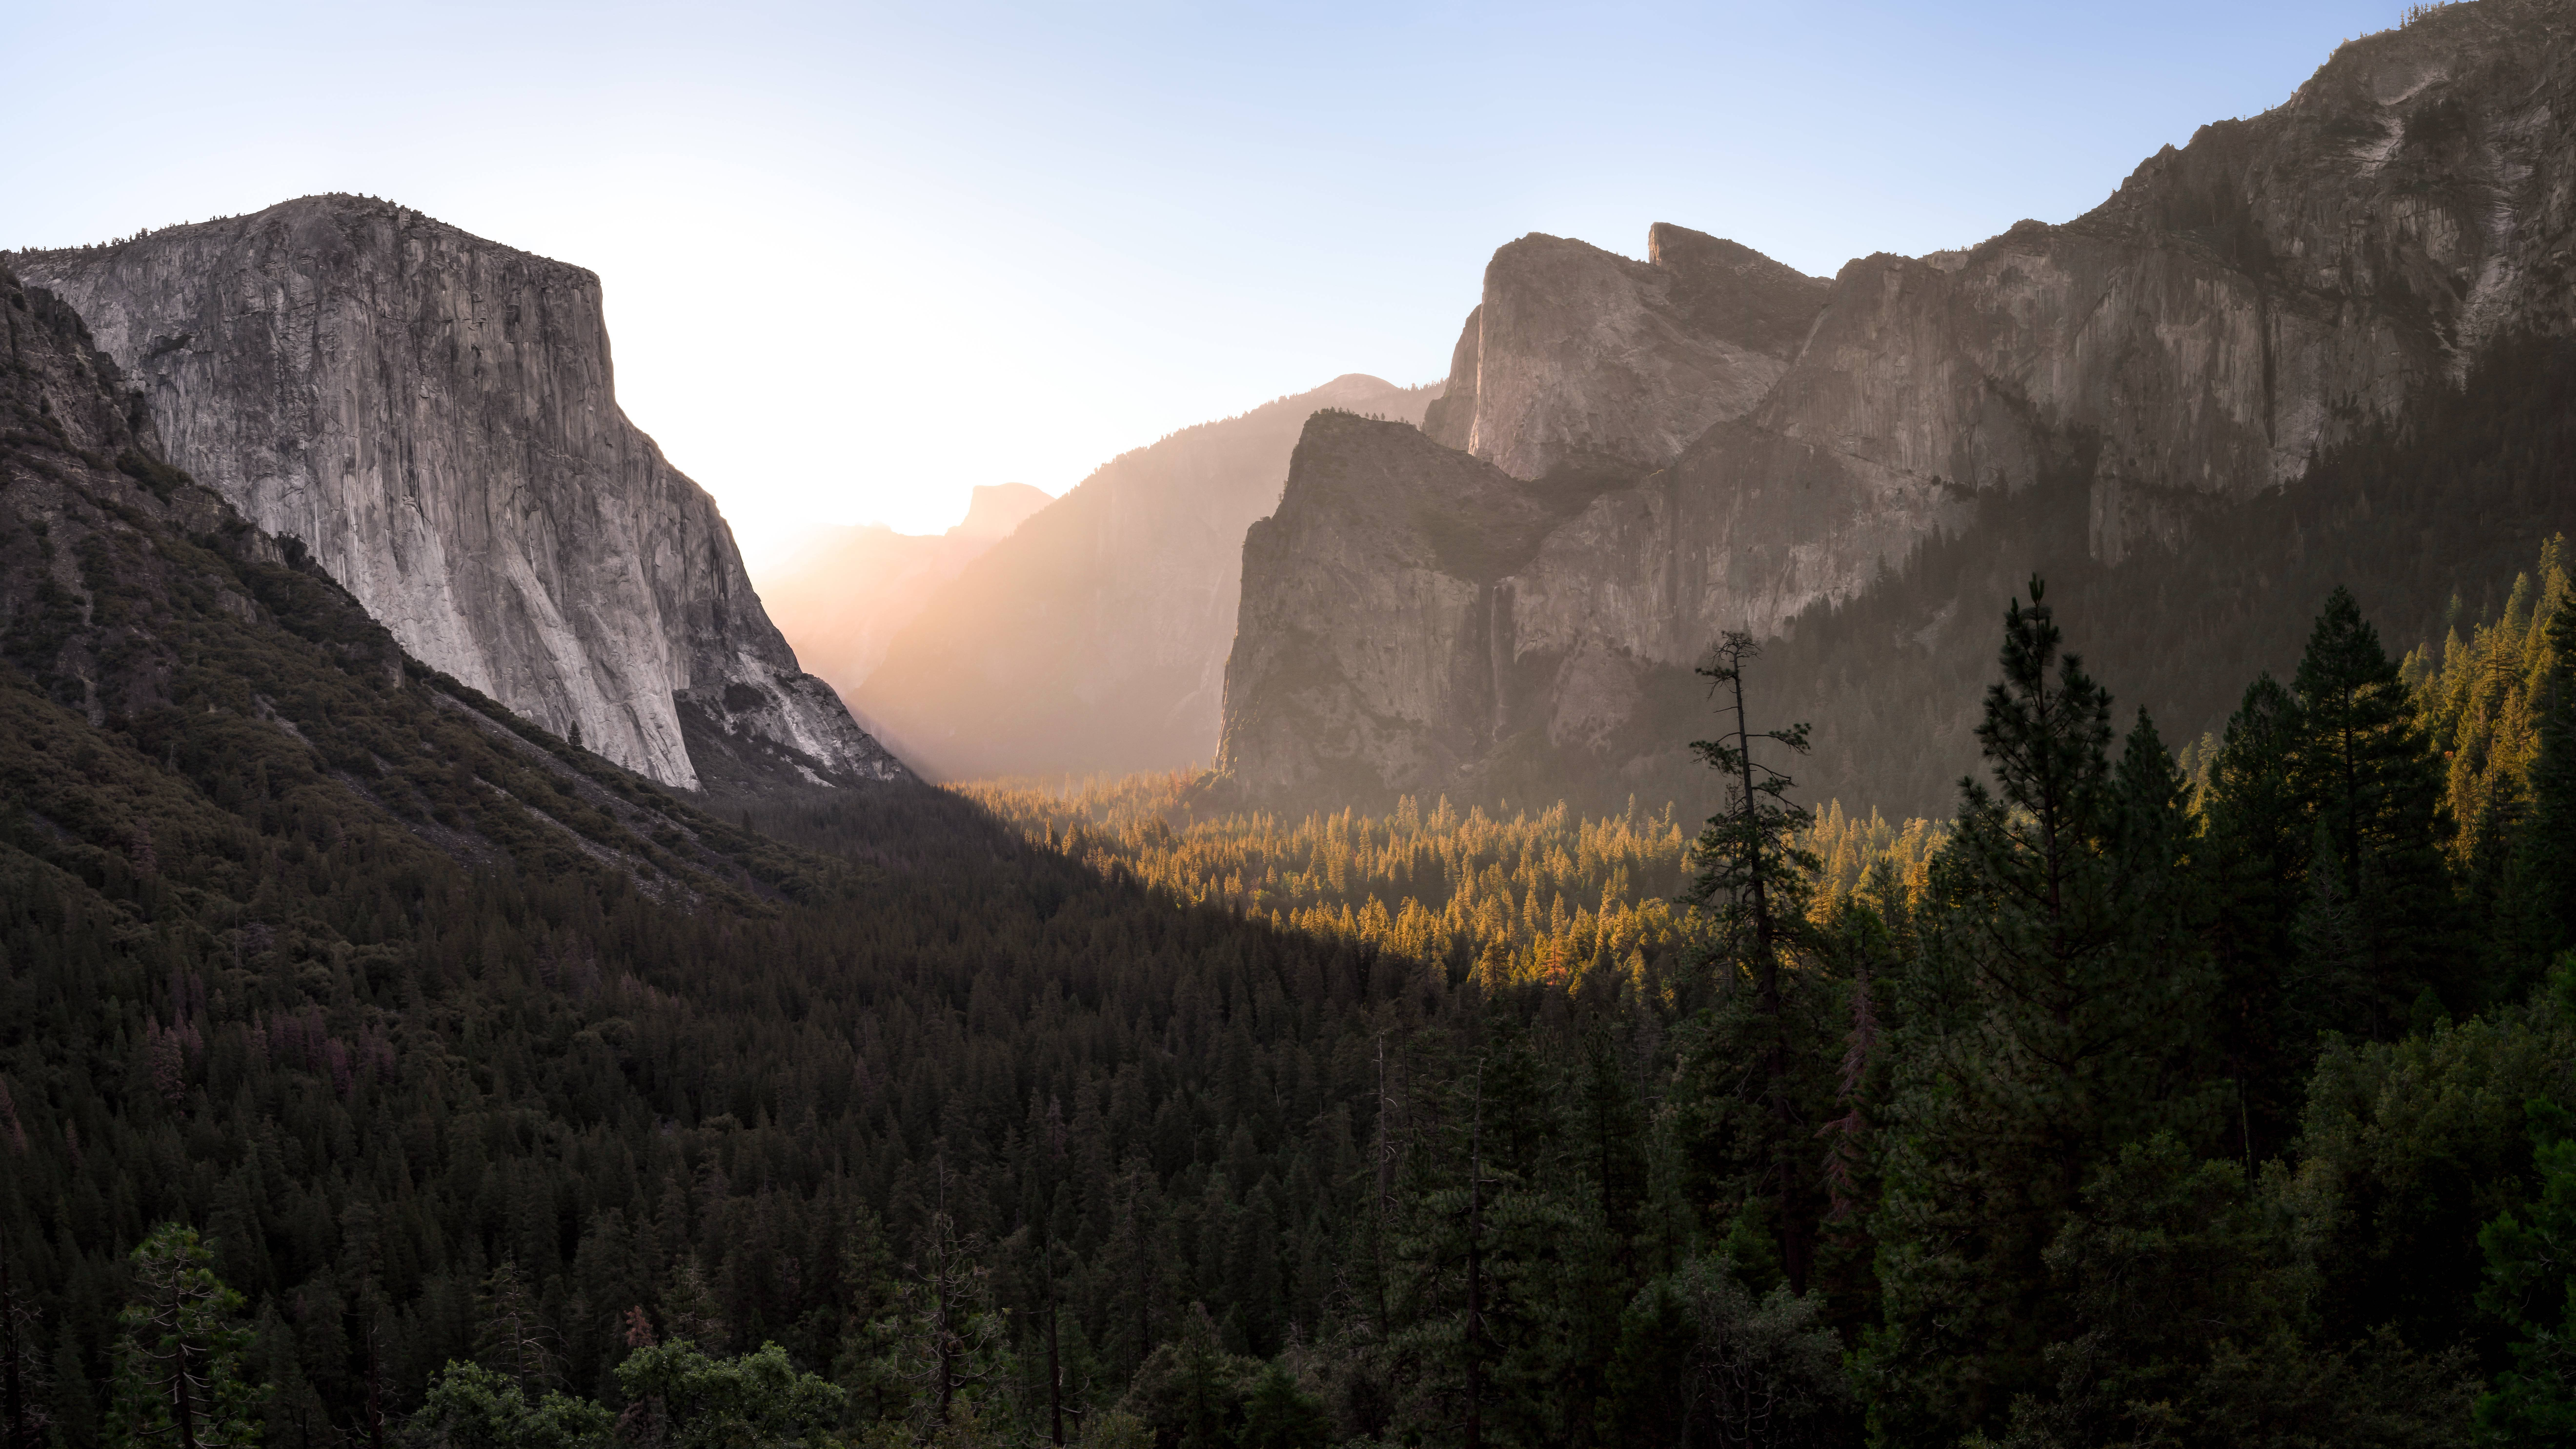 Sunrise at Yosemite wallpaper